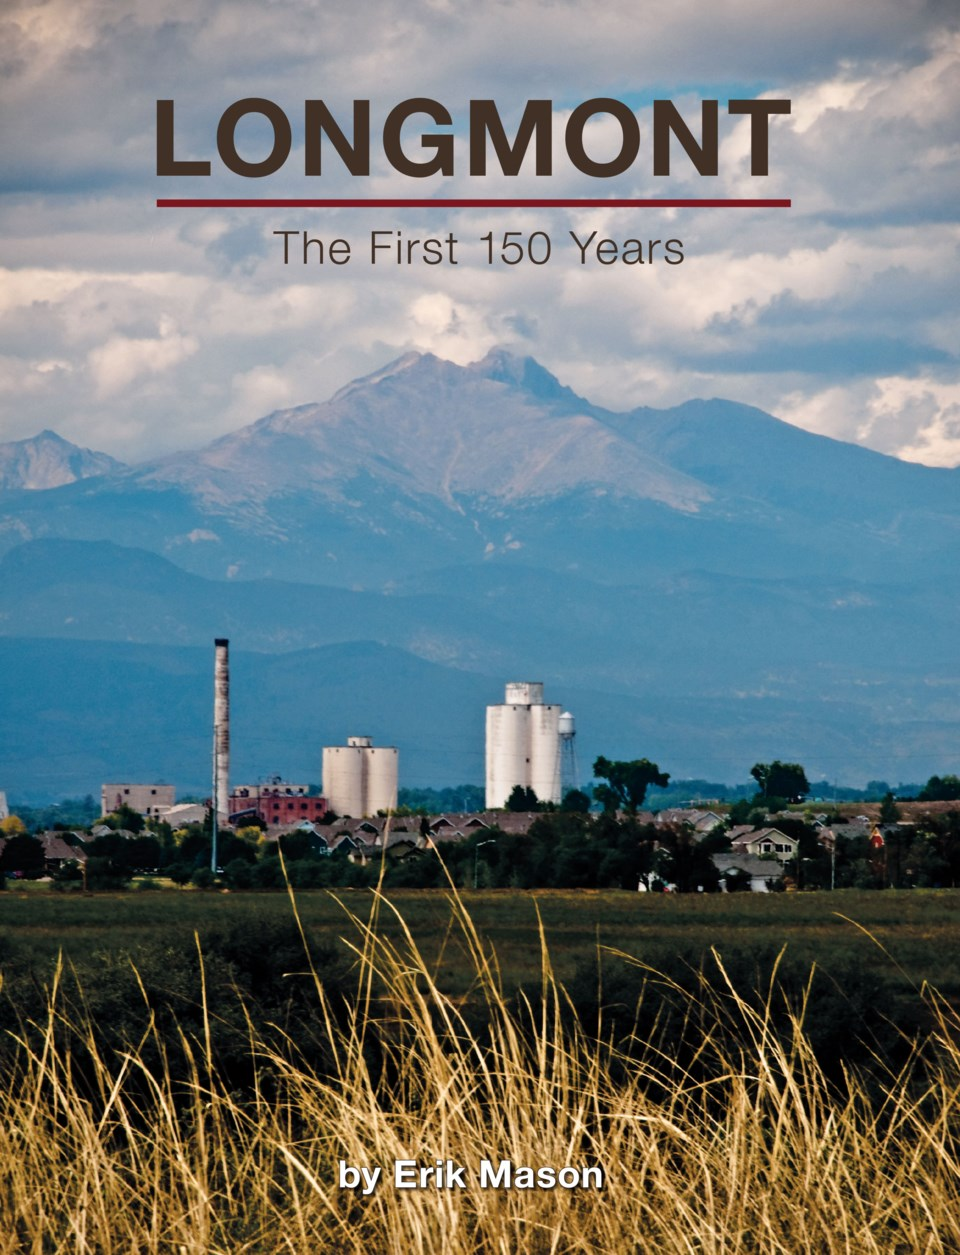 2020_10_18_LL_book_Longmont_first_150_years_cover